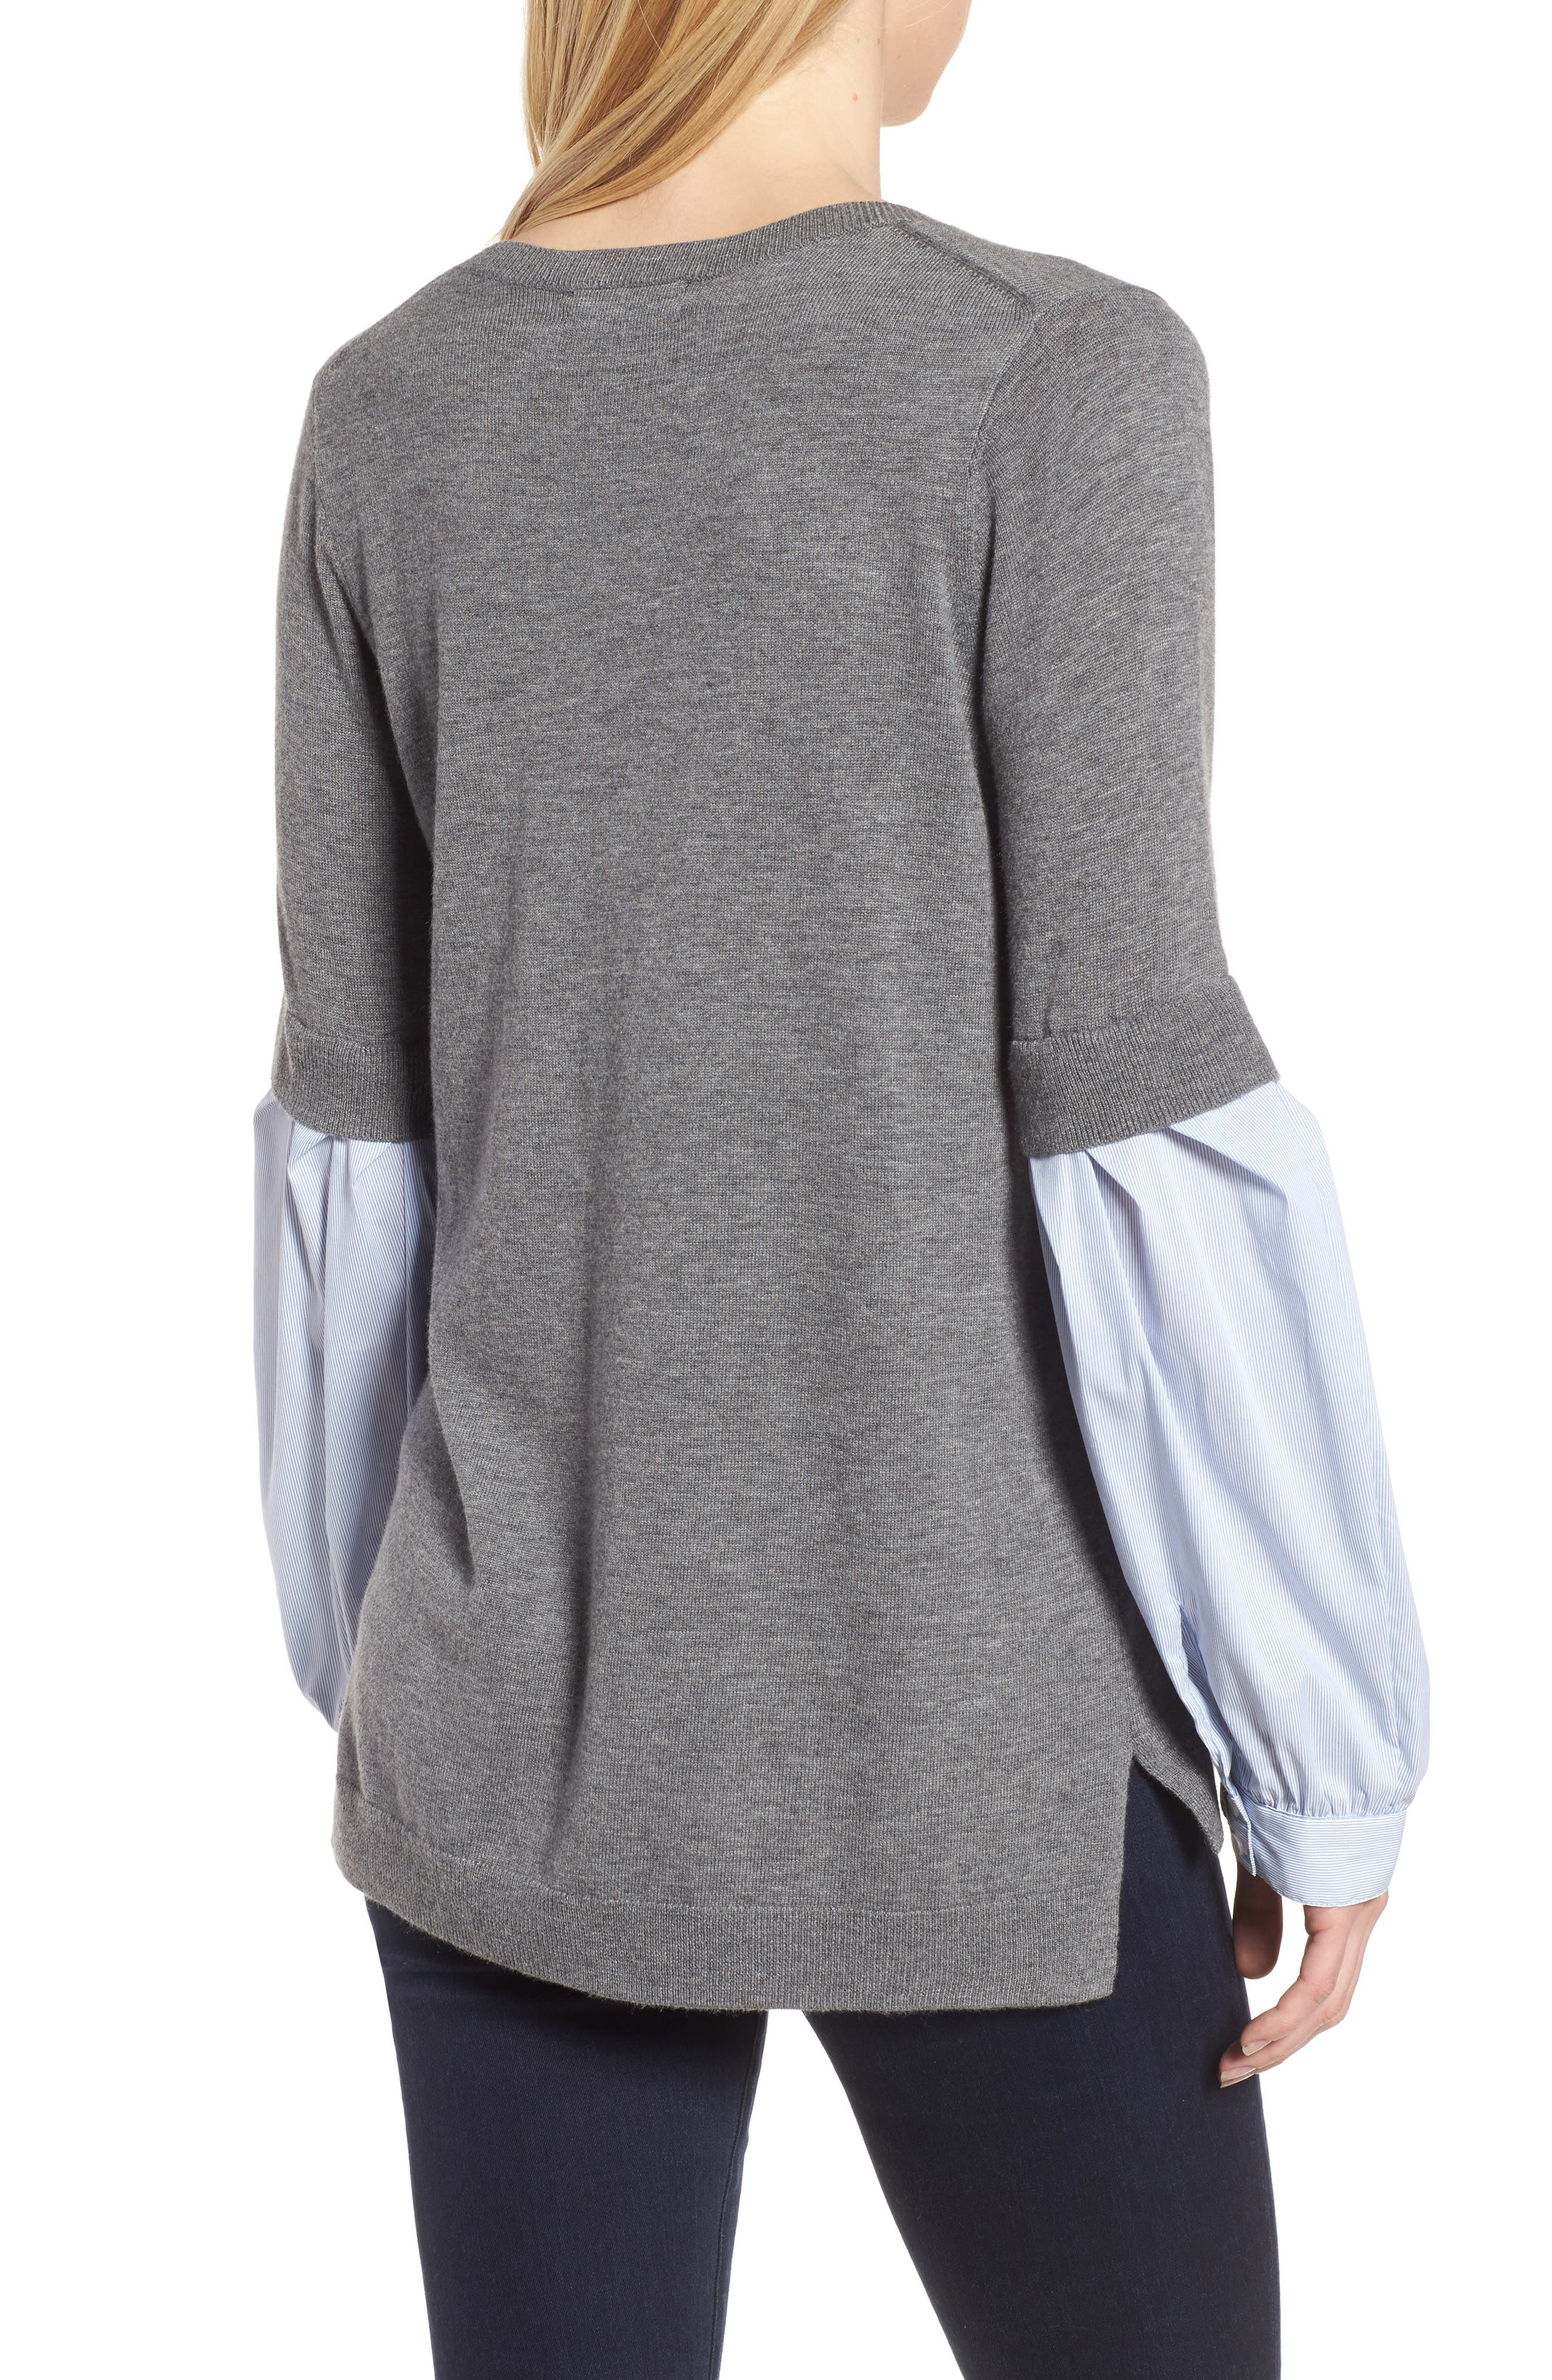 Woven Sleeve Sweater,                             Alternate thumbnail 2, color,                             030